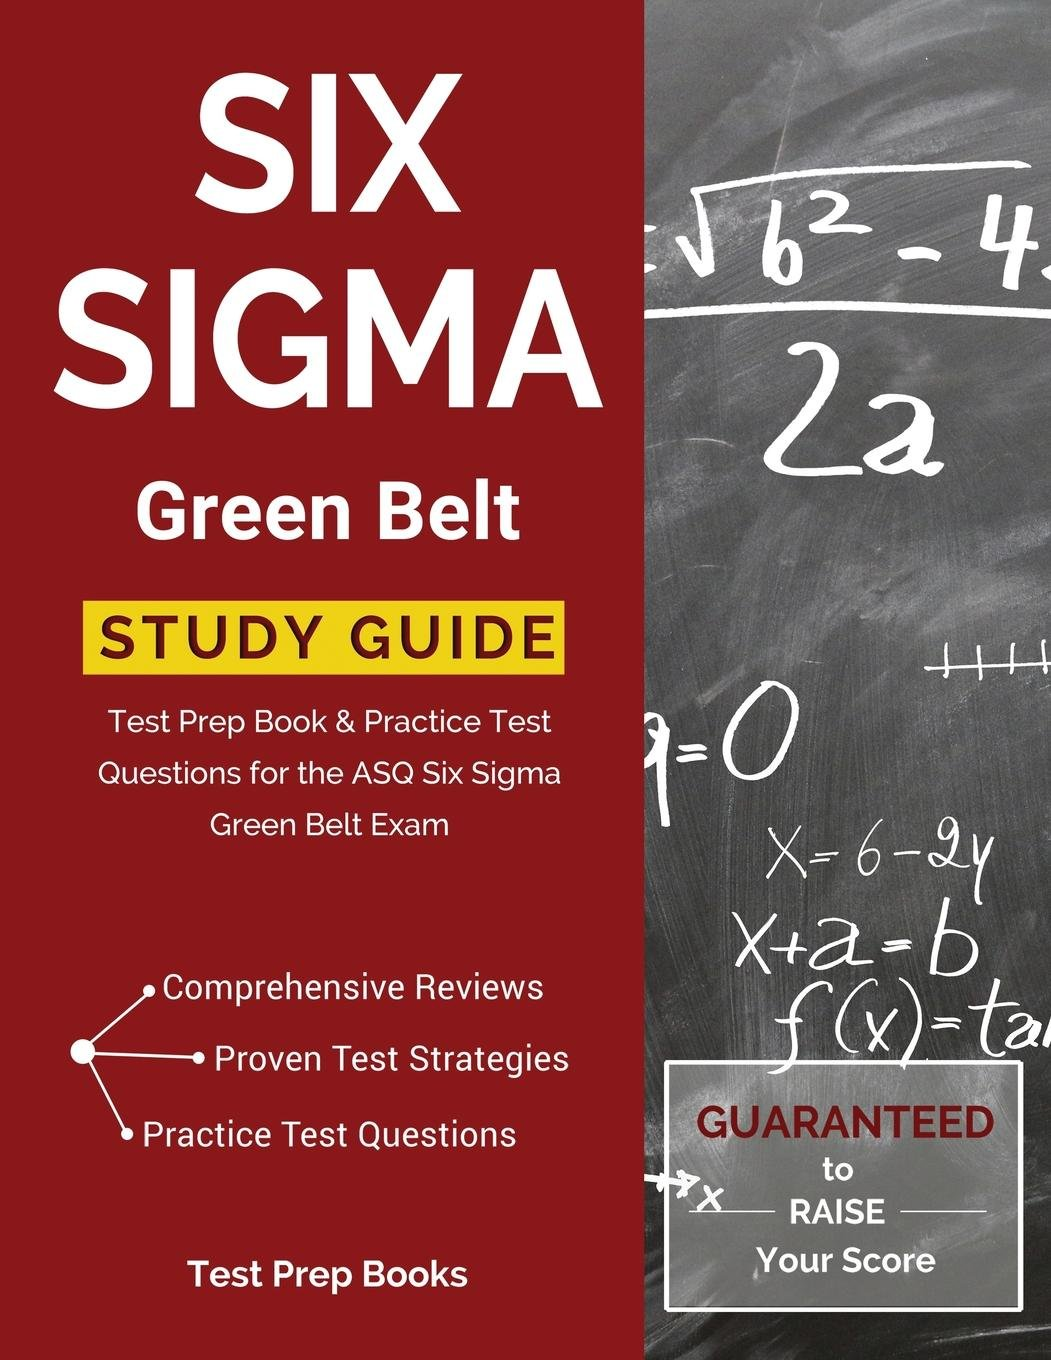 Buy Six Sigma Green Belt Study Guide Test Prep Book Practice Test